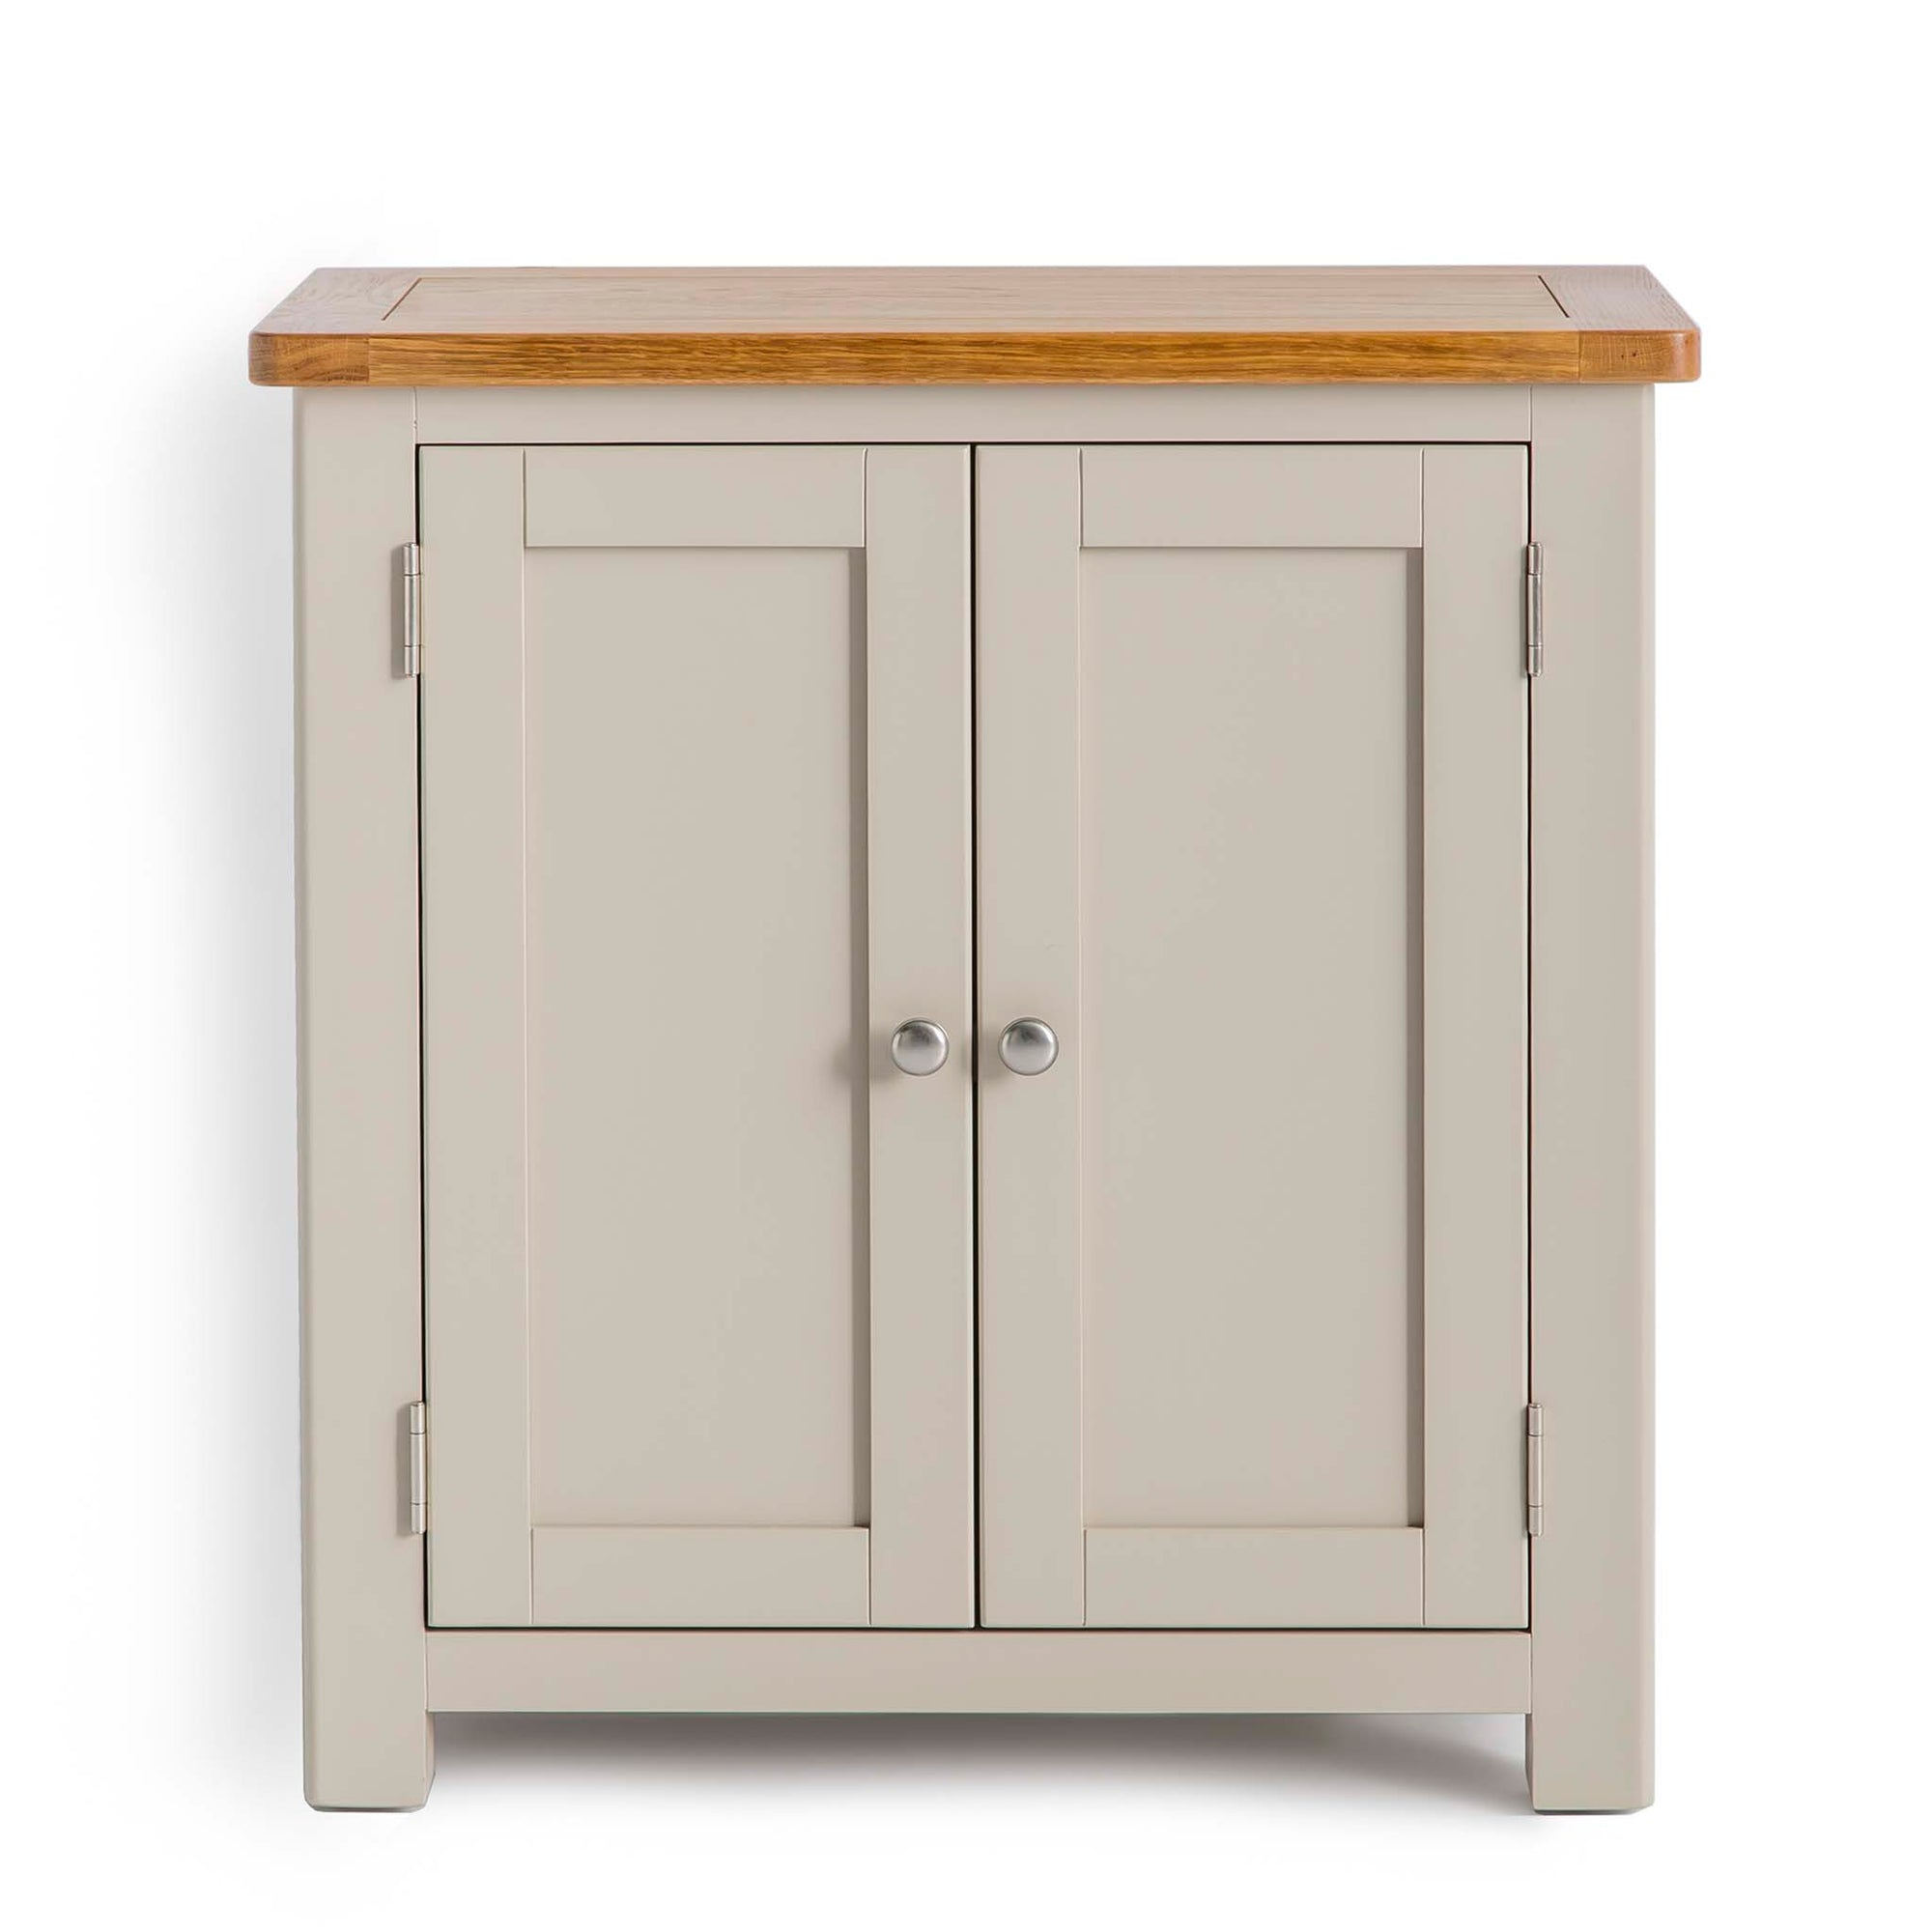 Padstow Stone Grey Small Storage Cupboard Cabinet by Roseland Furniture